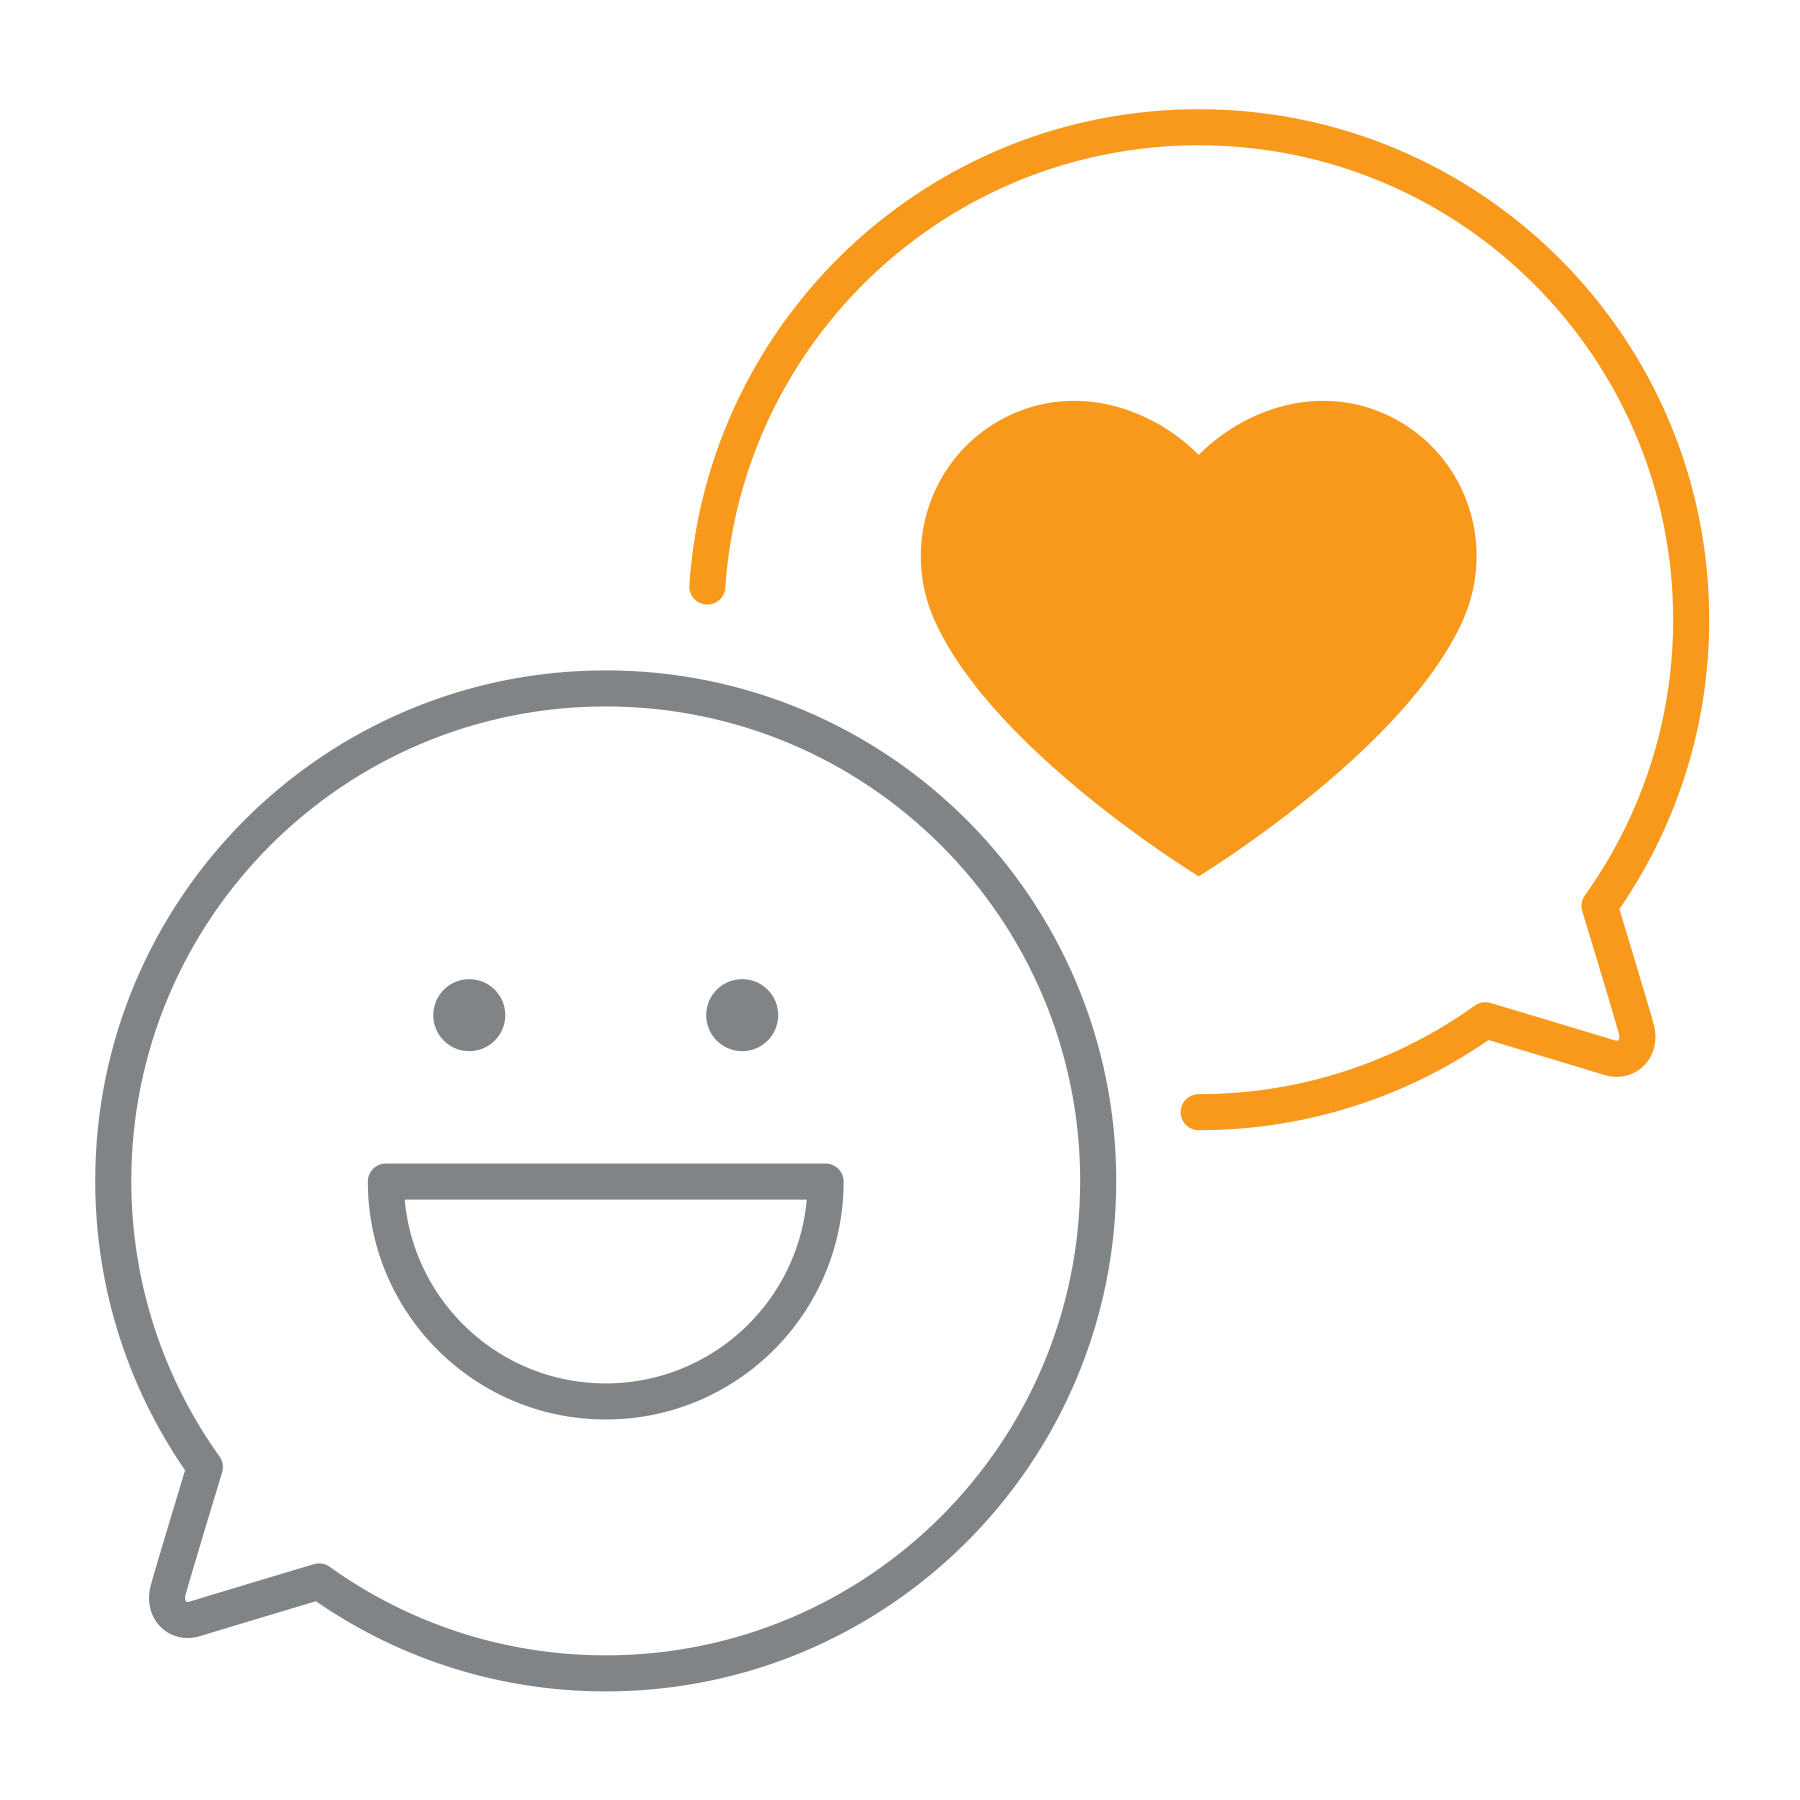 Smiley face and heart social media interactions